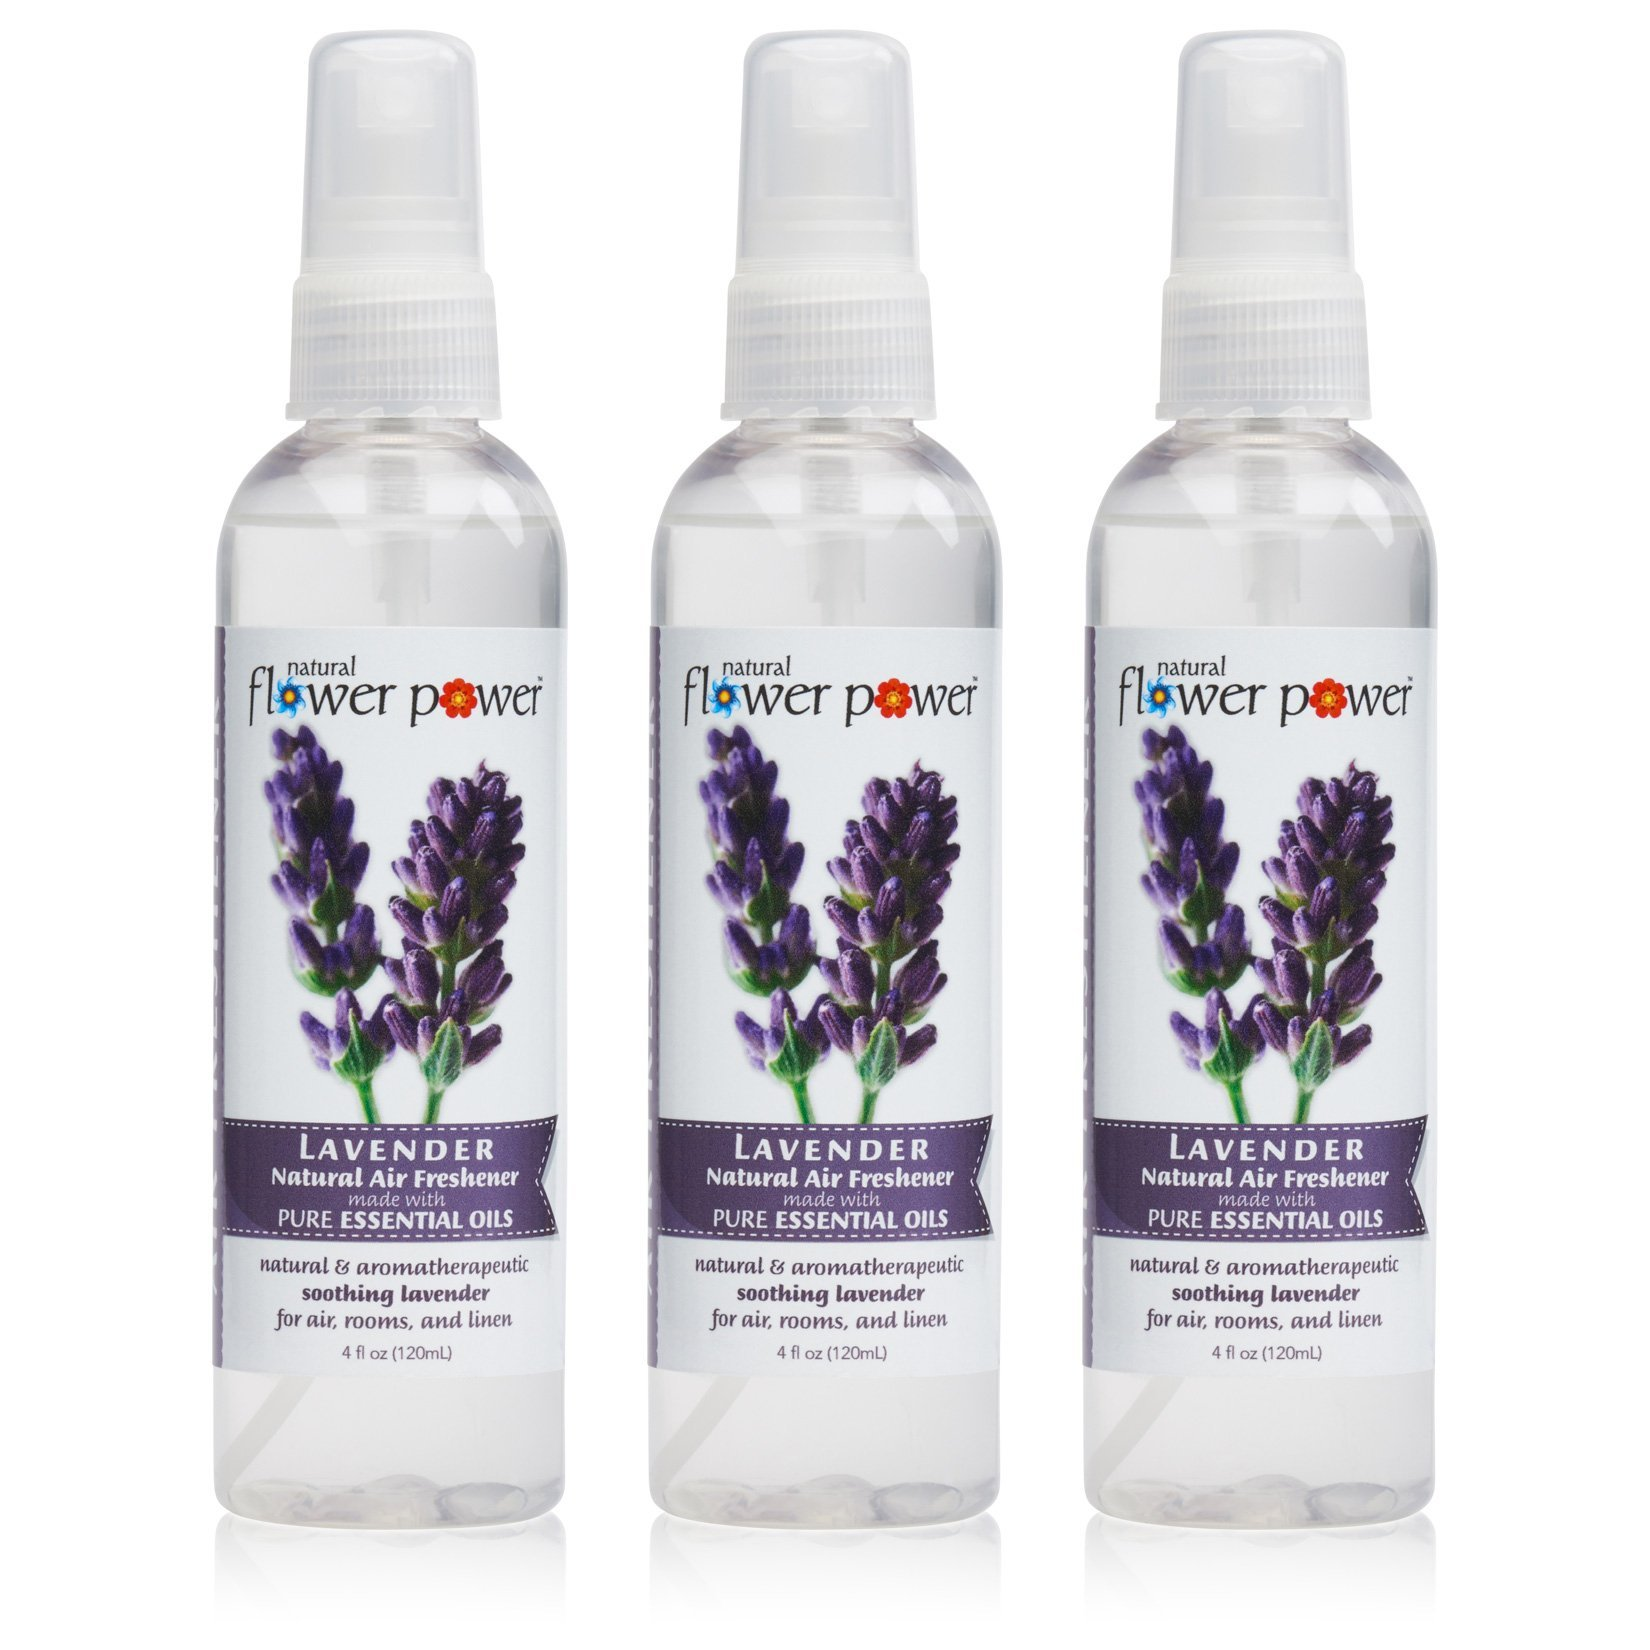 Natural Flower Power - Natural Air Freshener, Lavender, 4 Ounce (Pack of 3)